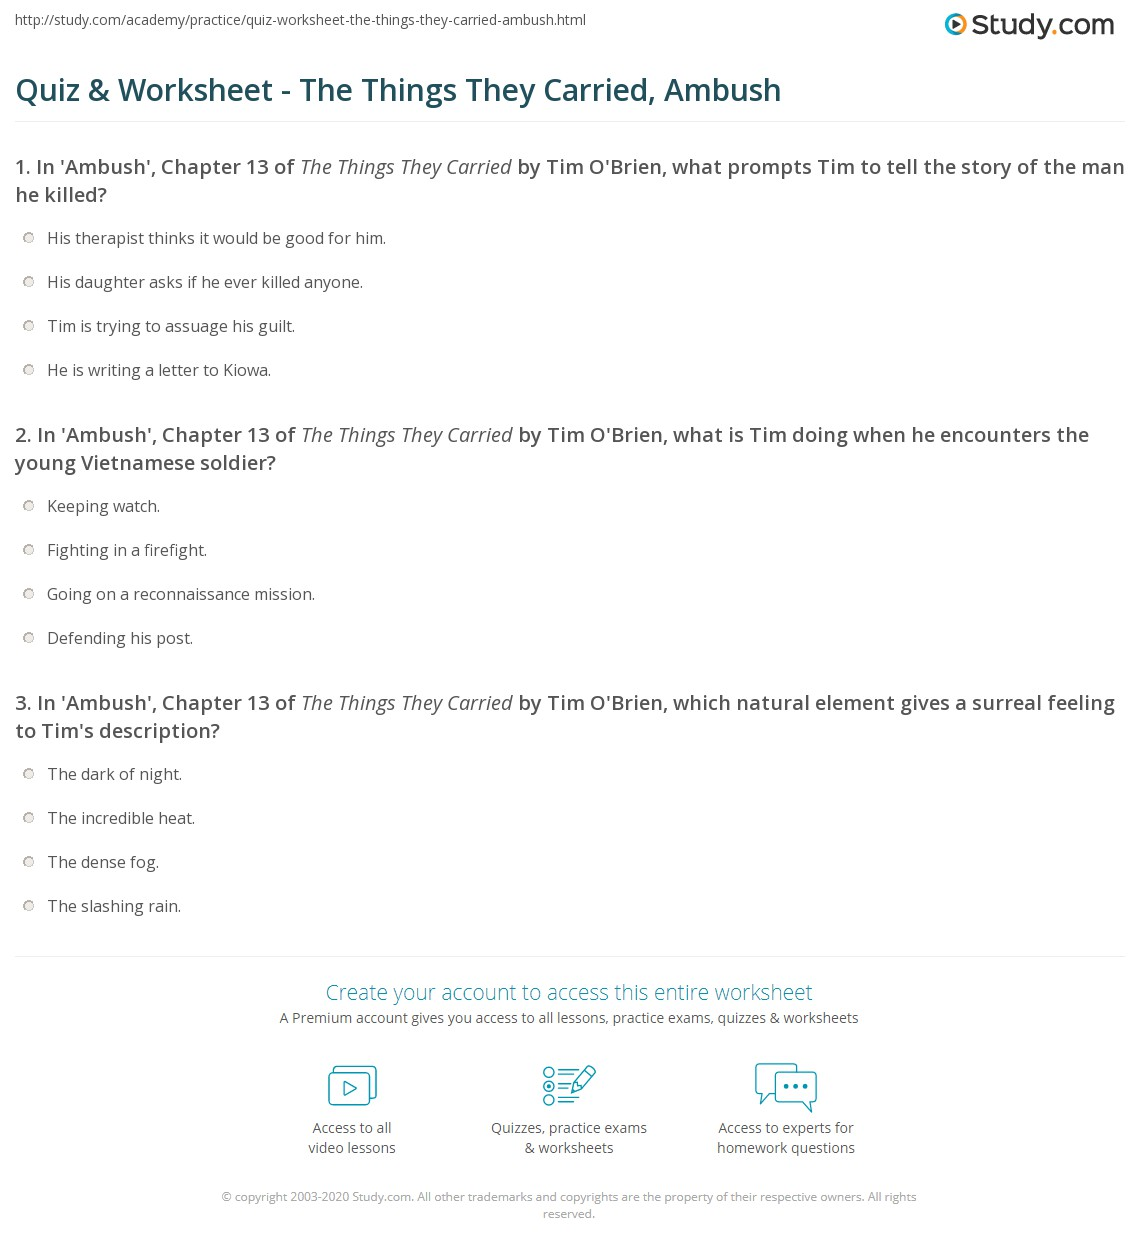 quiz worksheet the things they carried ambush com print the things they carried chapter 13 ambush summary worksheet